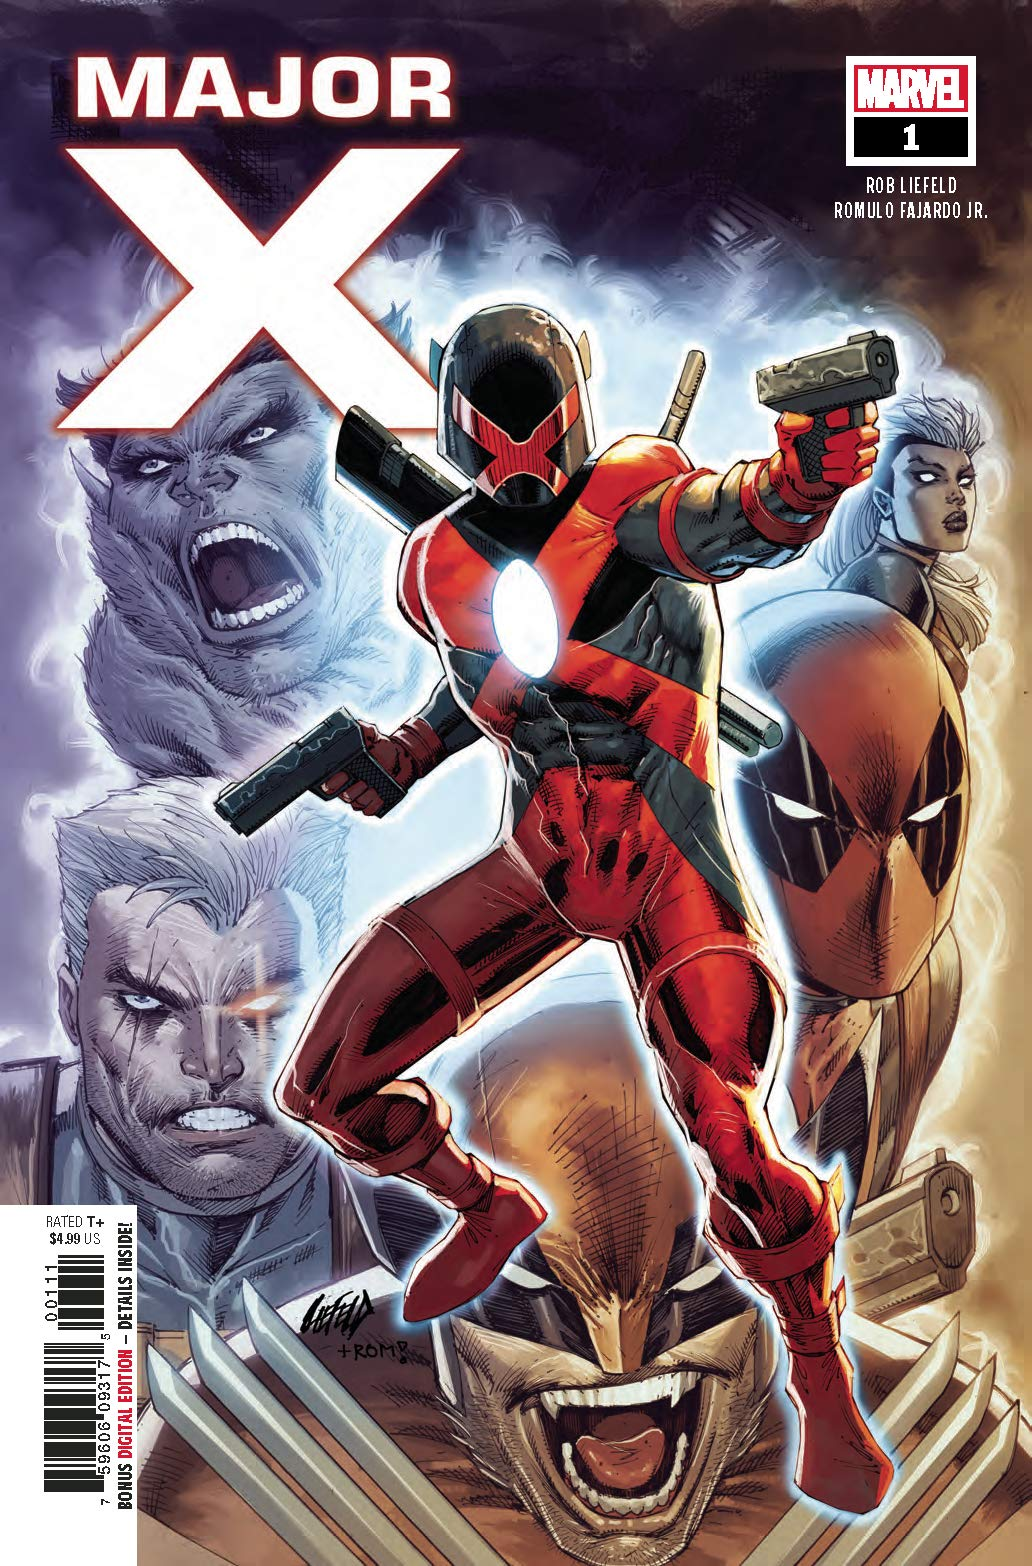 MAJOR X #3 1ST PRINTING ROB LIEFELD MAIN COVER MARVEL COMICS OF 6 2019